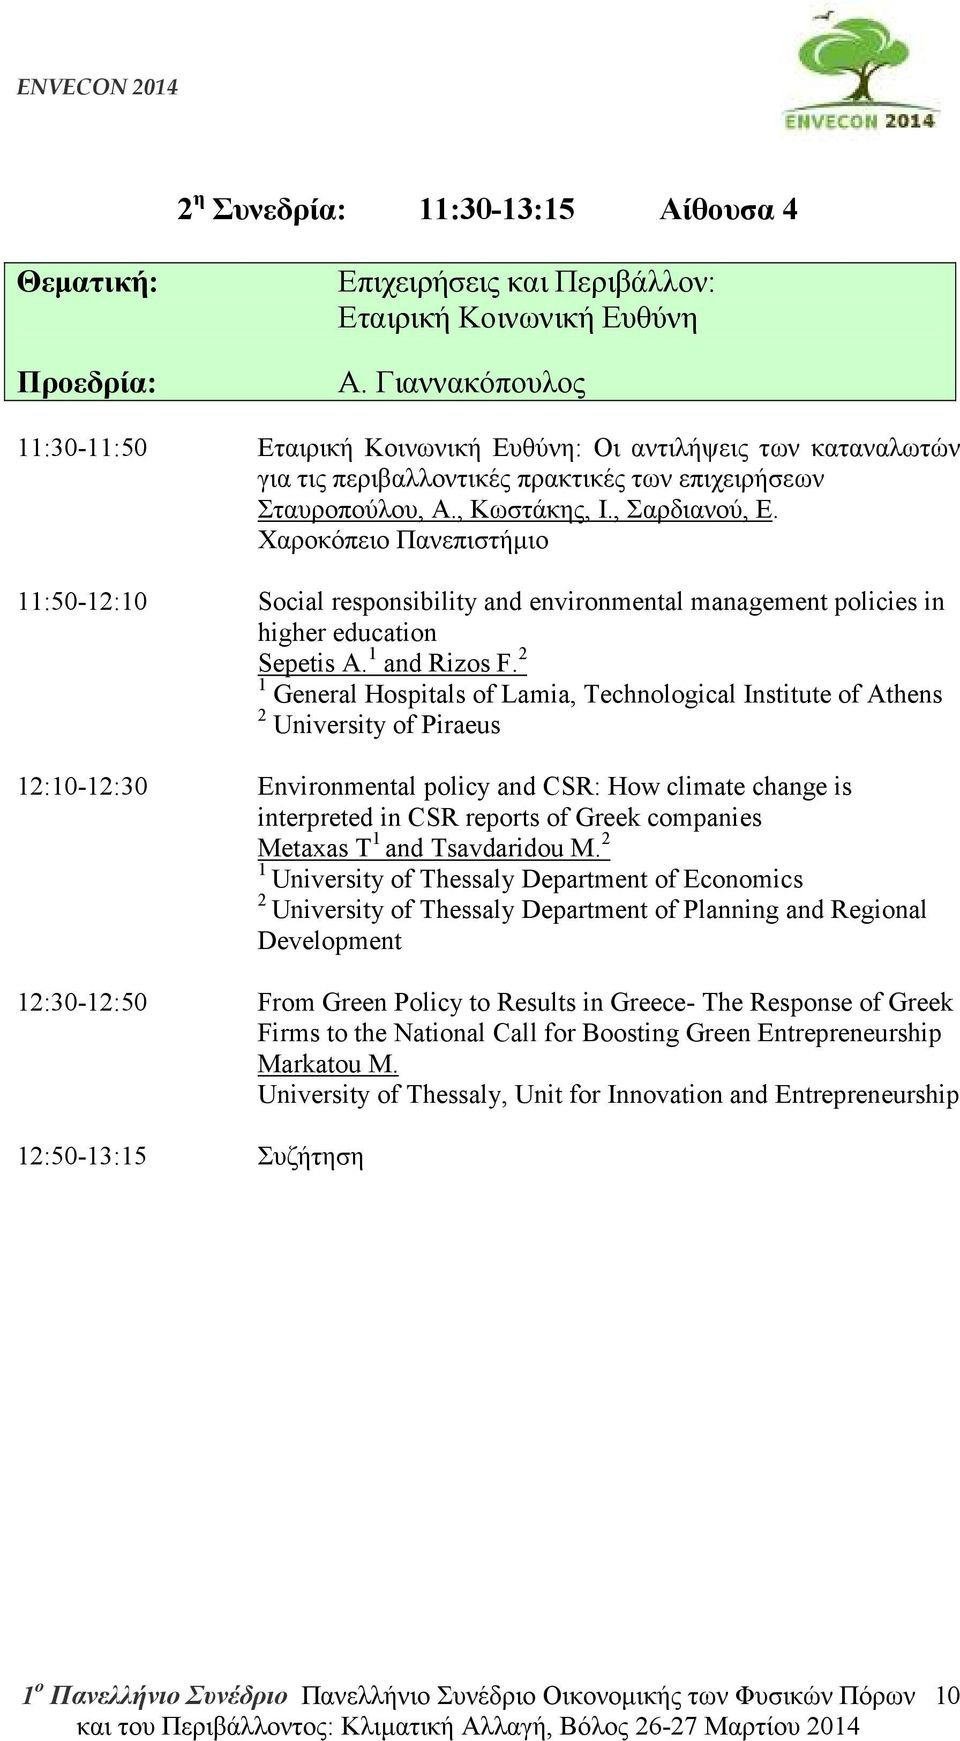 Χαροκόπειο Πανεπιστήµιο 11:50-12:10 Social responsibility and environmental management policies in higher education Sepetis A. 1 and Rizos F.